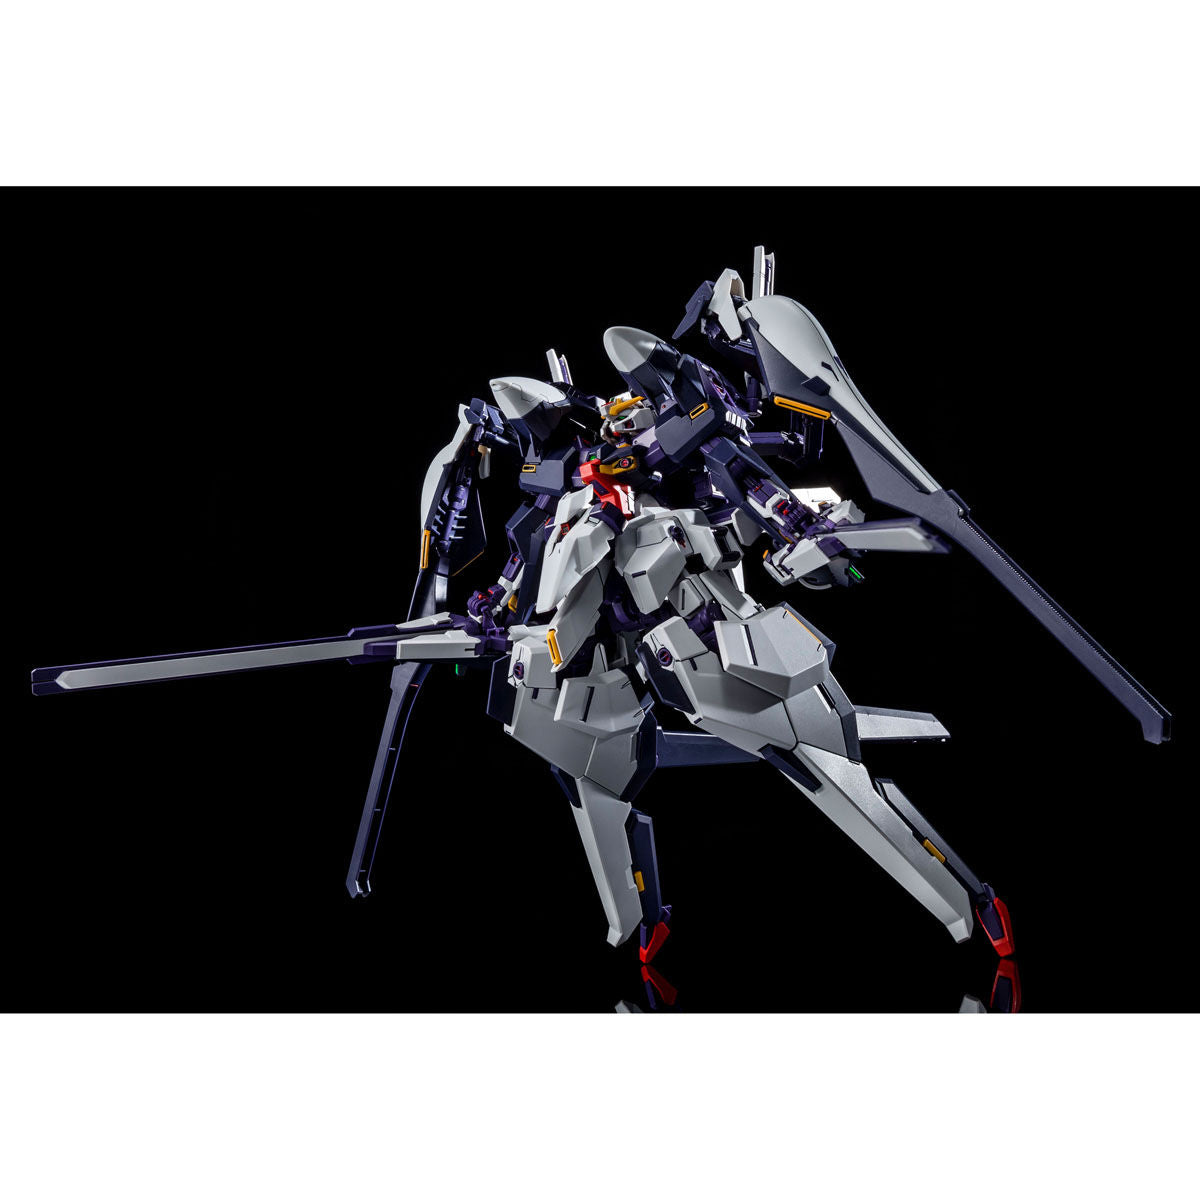 P-BANDAI: HGUC 1/144 RX-124 GUNDAM TR-6 HAZE'N-THLEY II-RAH [End of APRIL 2020]